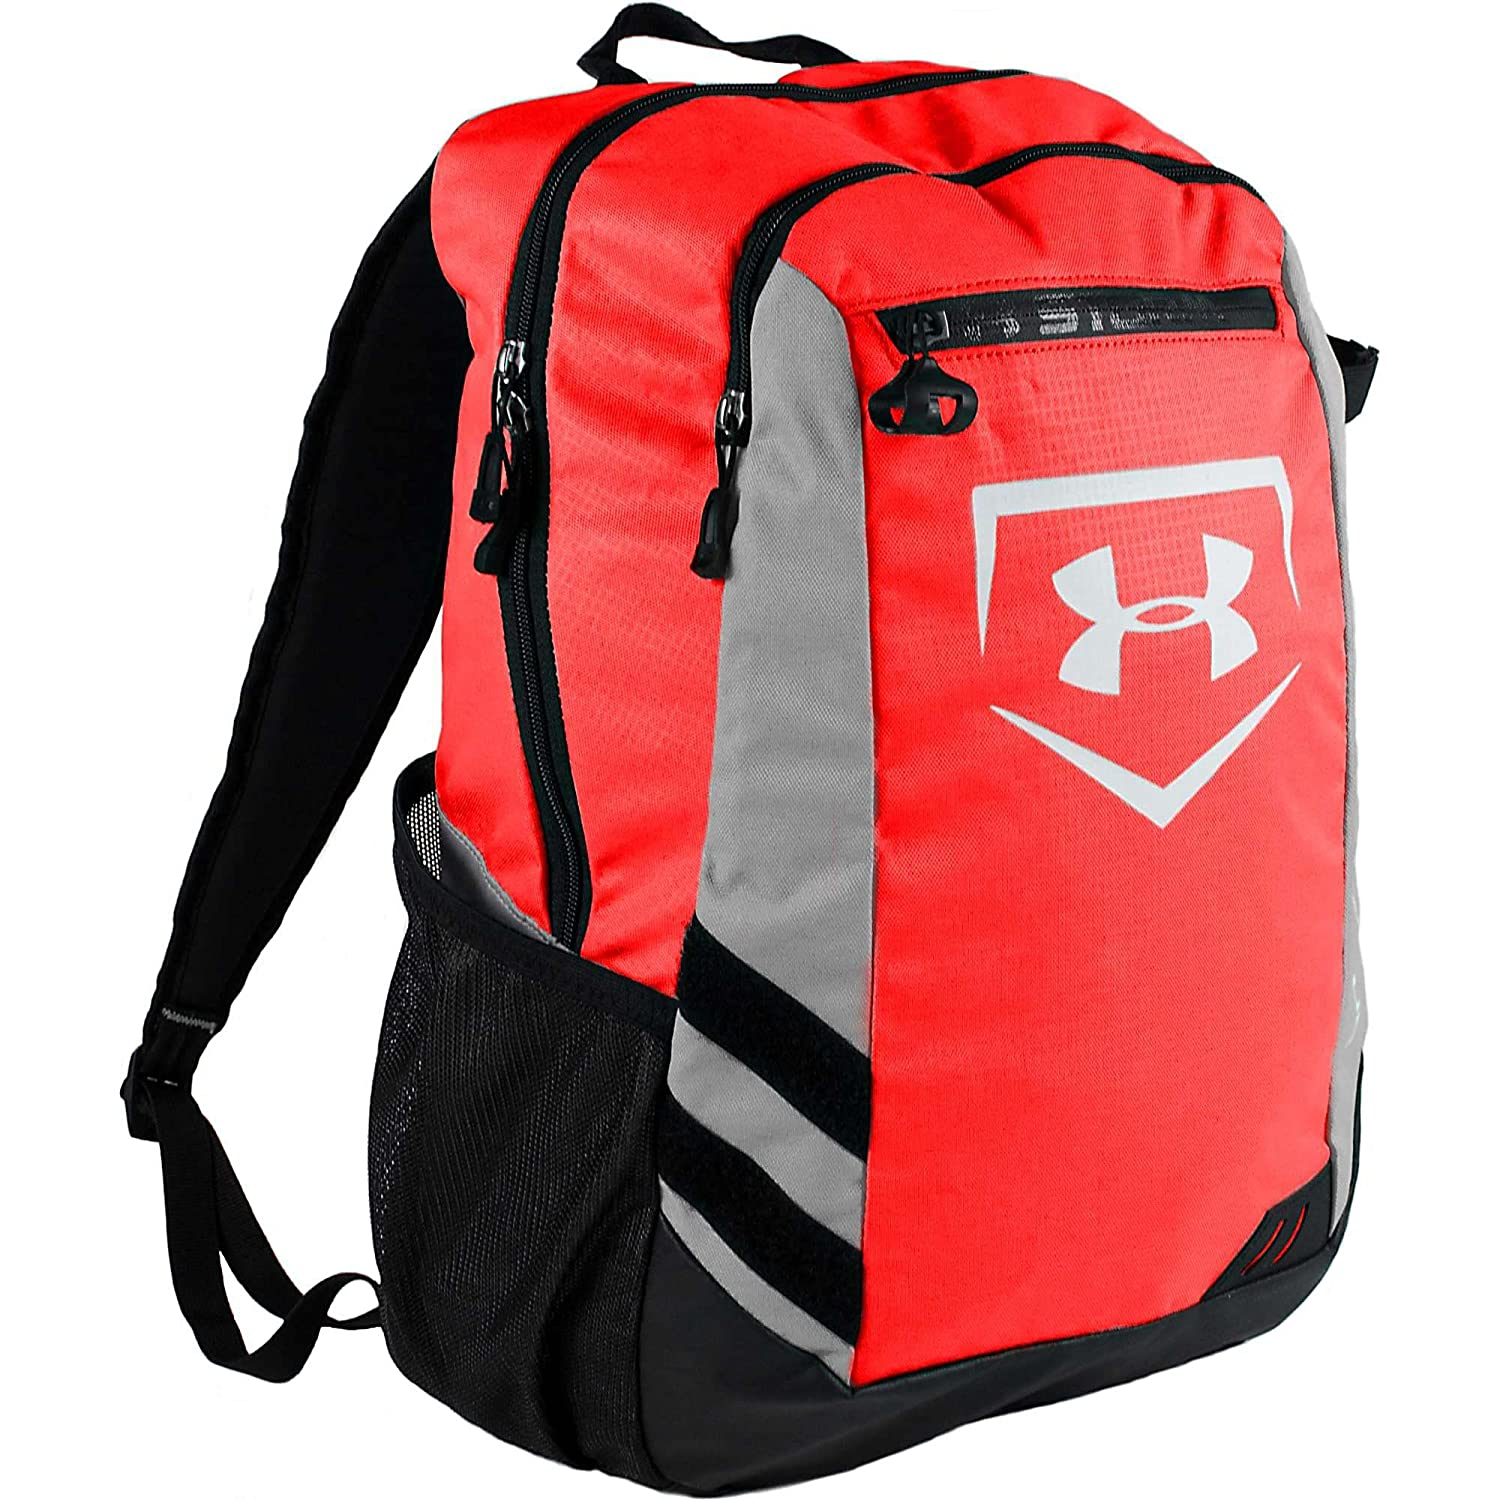 designer fashion 25c2b ef62a Amazon.com   Under Armour Hustle Bat Pack Graphite Size One Size   Sporting  Goods   Sports   Outdoors